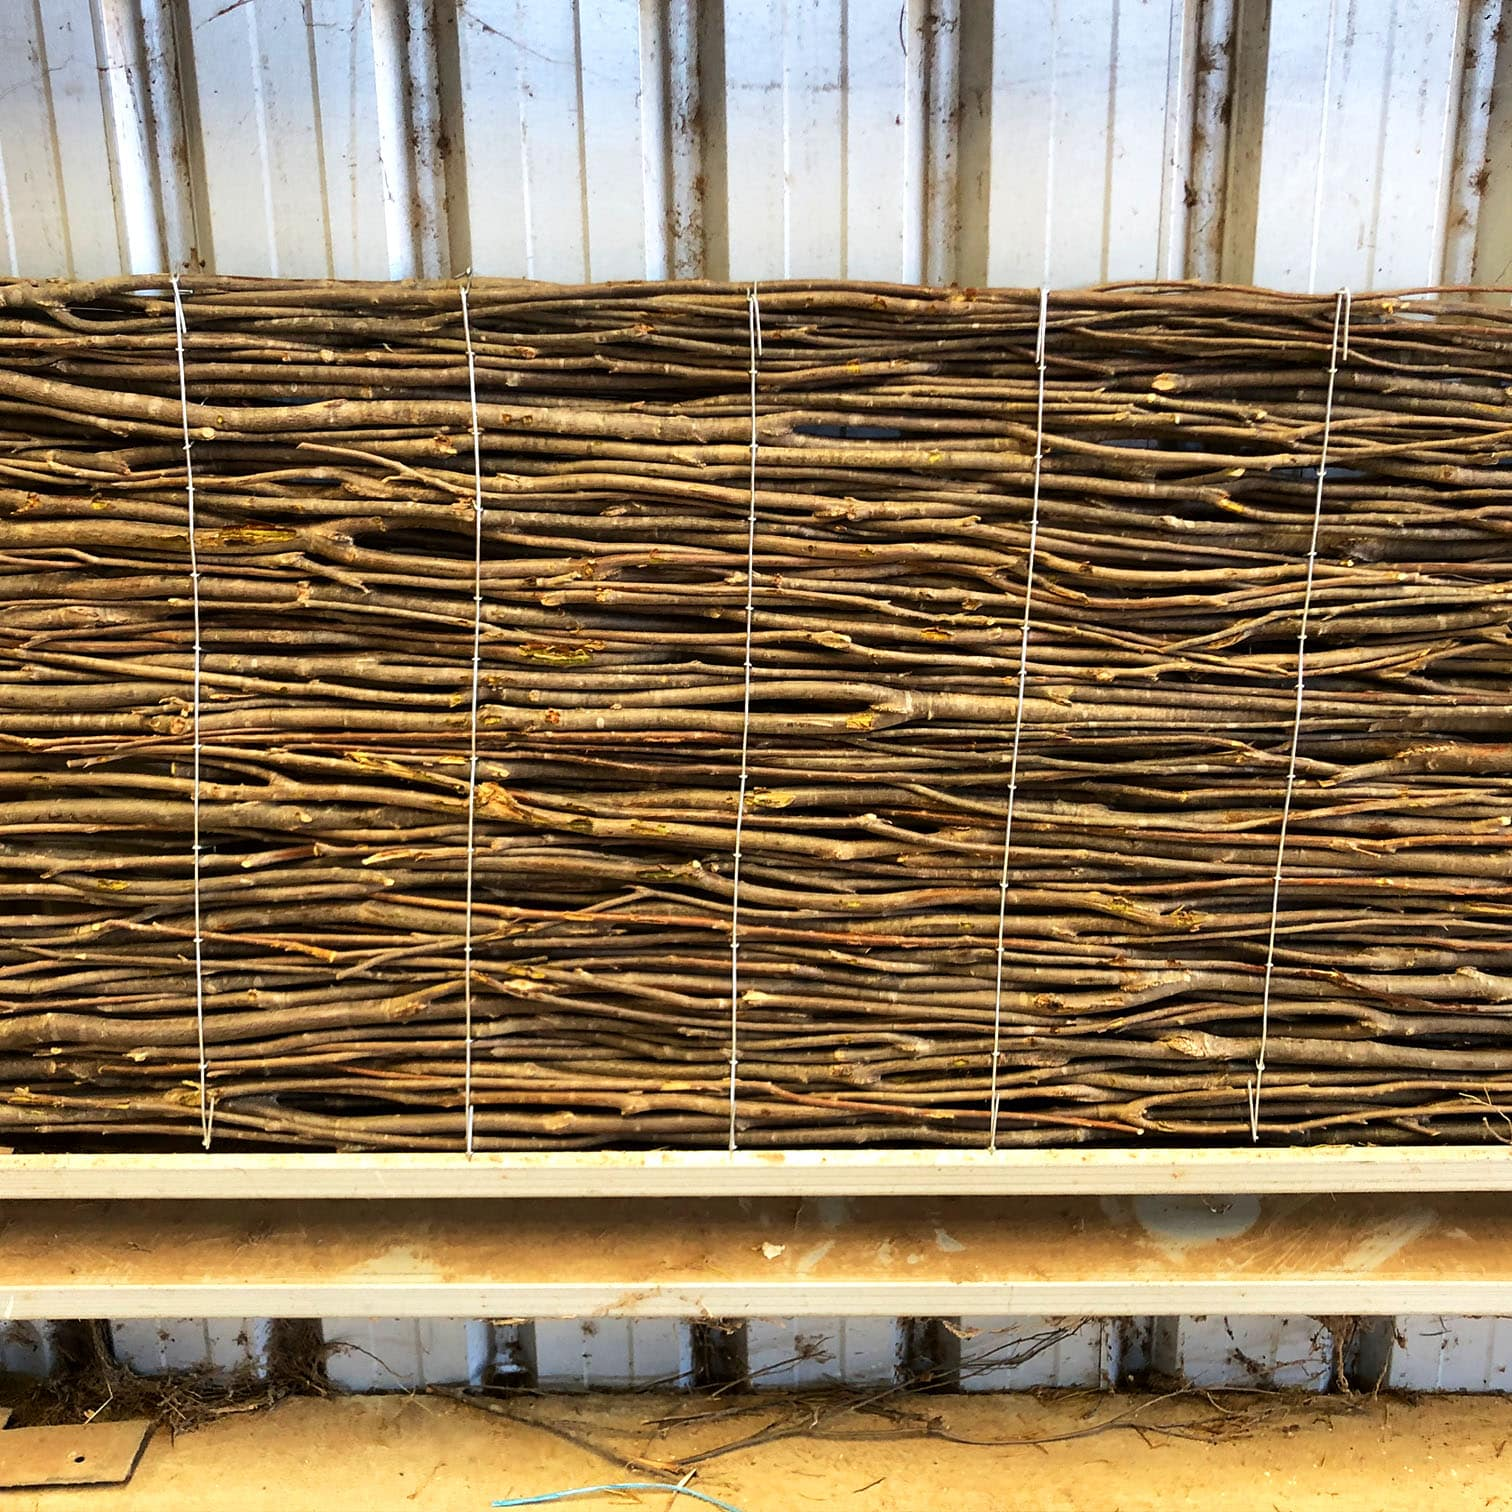 Tightly wound Bowman Brush brushwood panel leaning against a shed wall